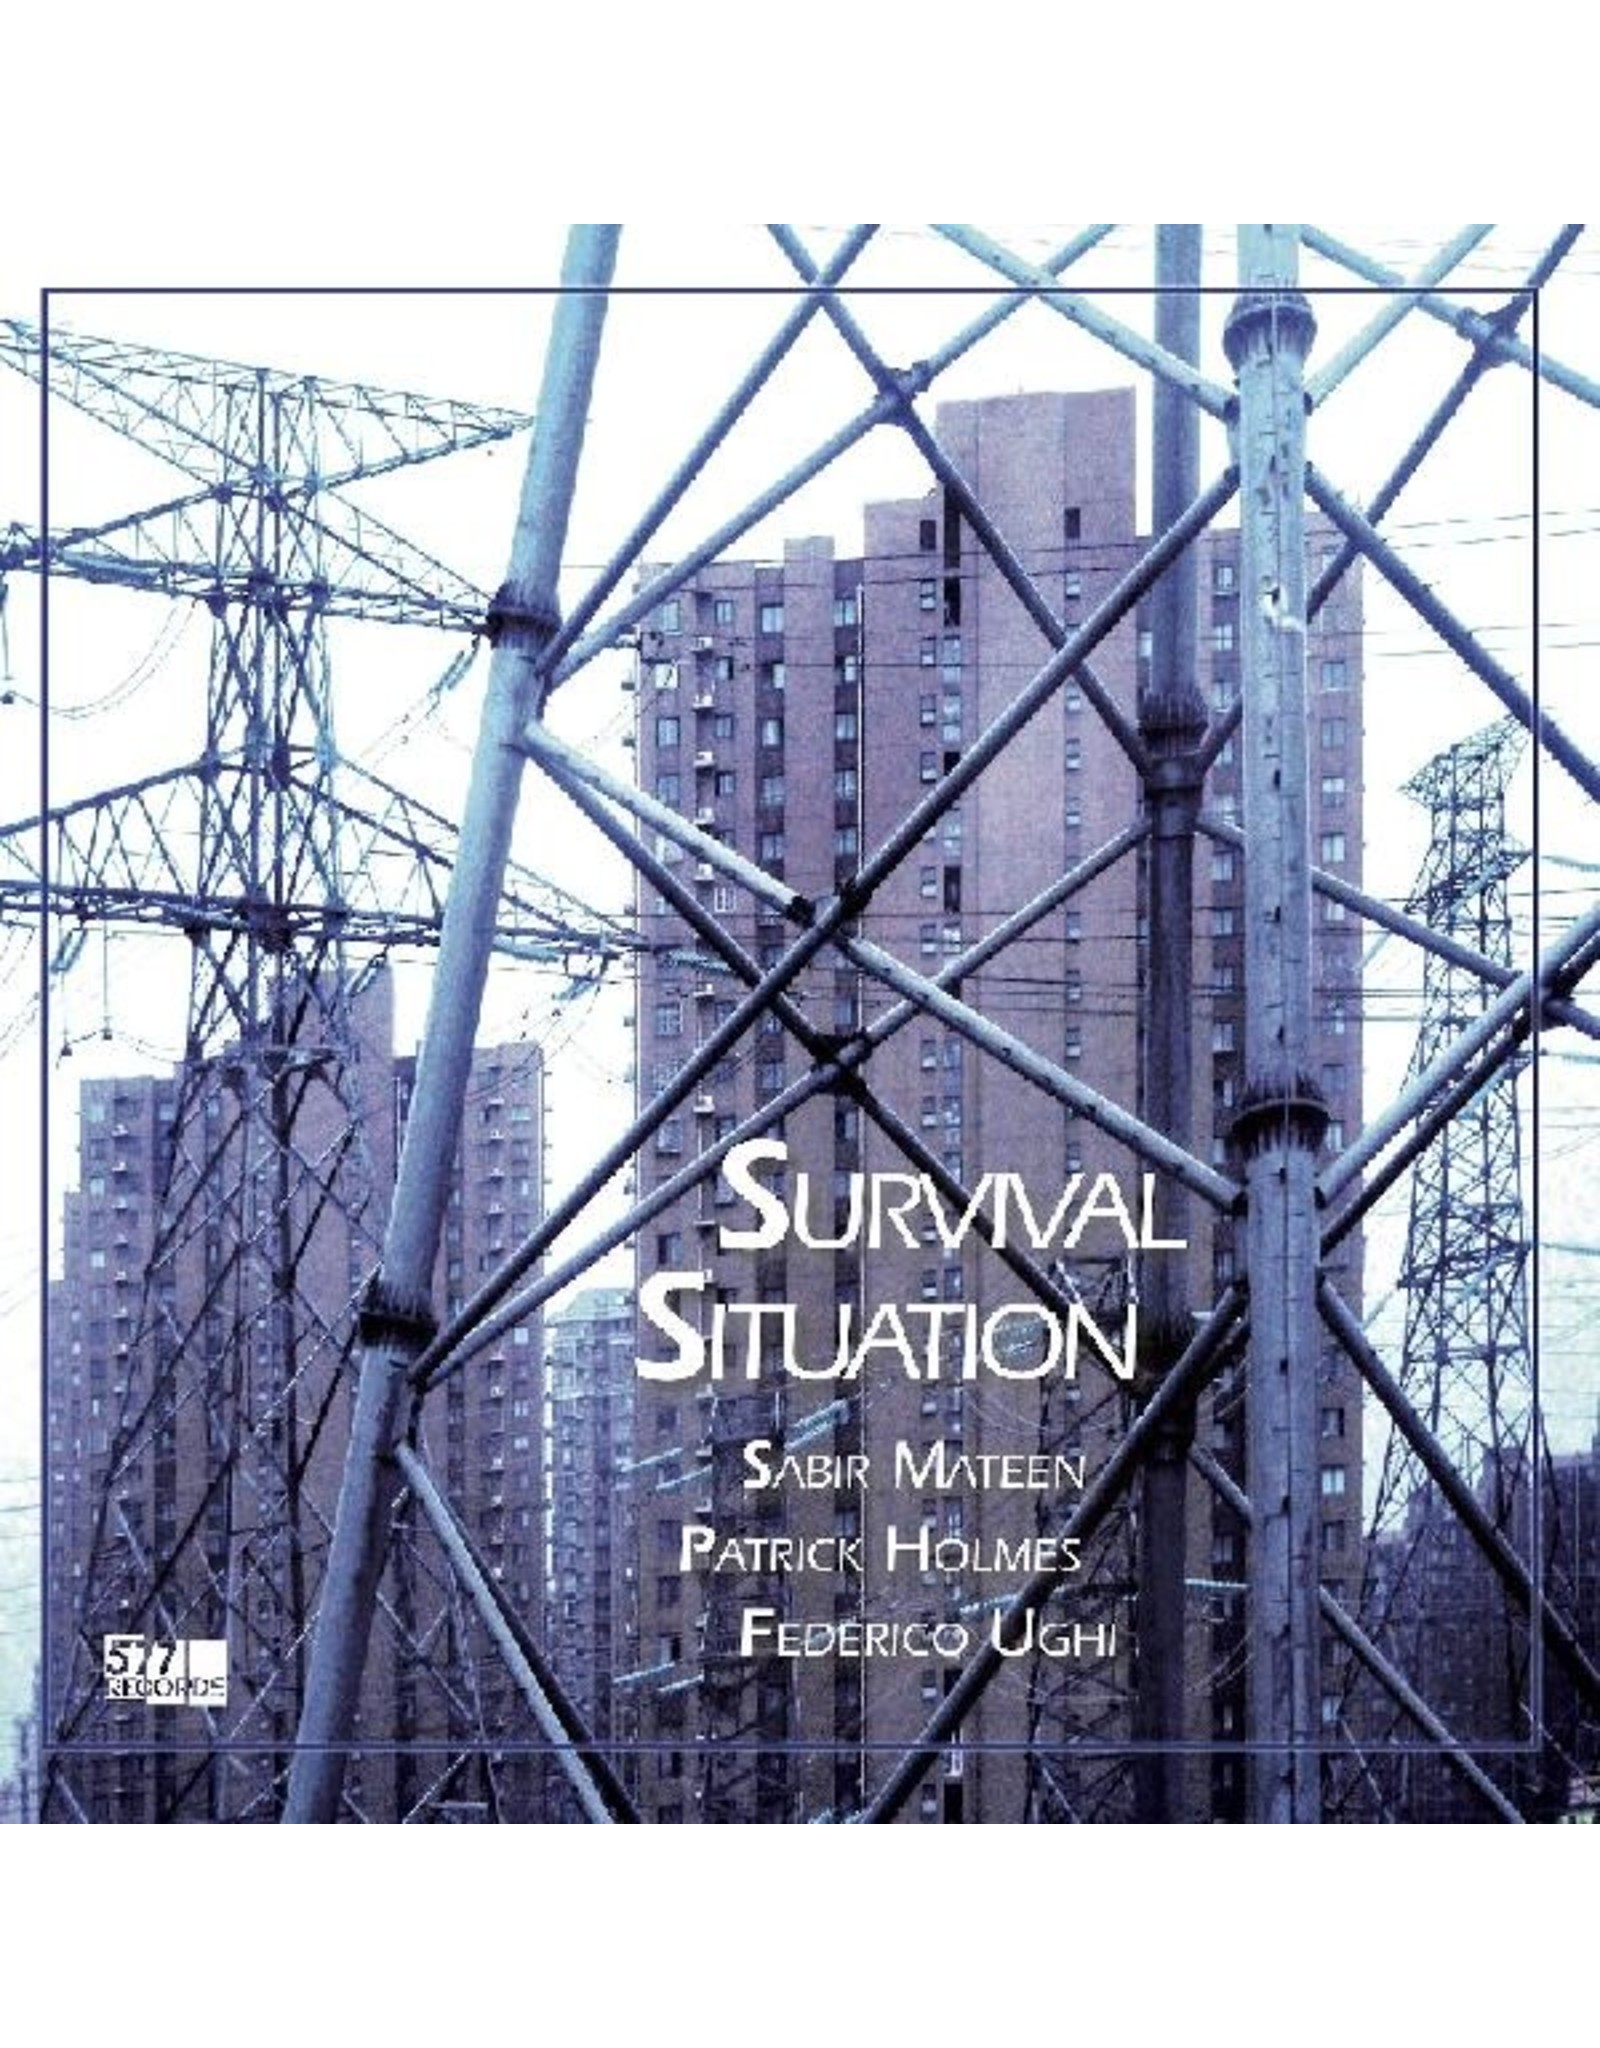 New Vinyl Sabir Mateen, Patrick Holmes, Federico Ughi - Survival Situation LP